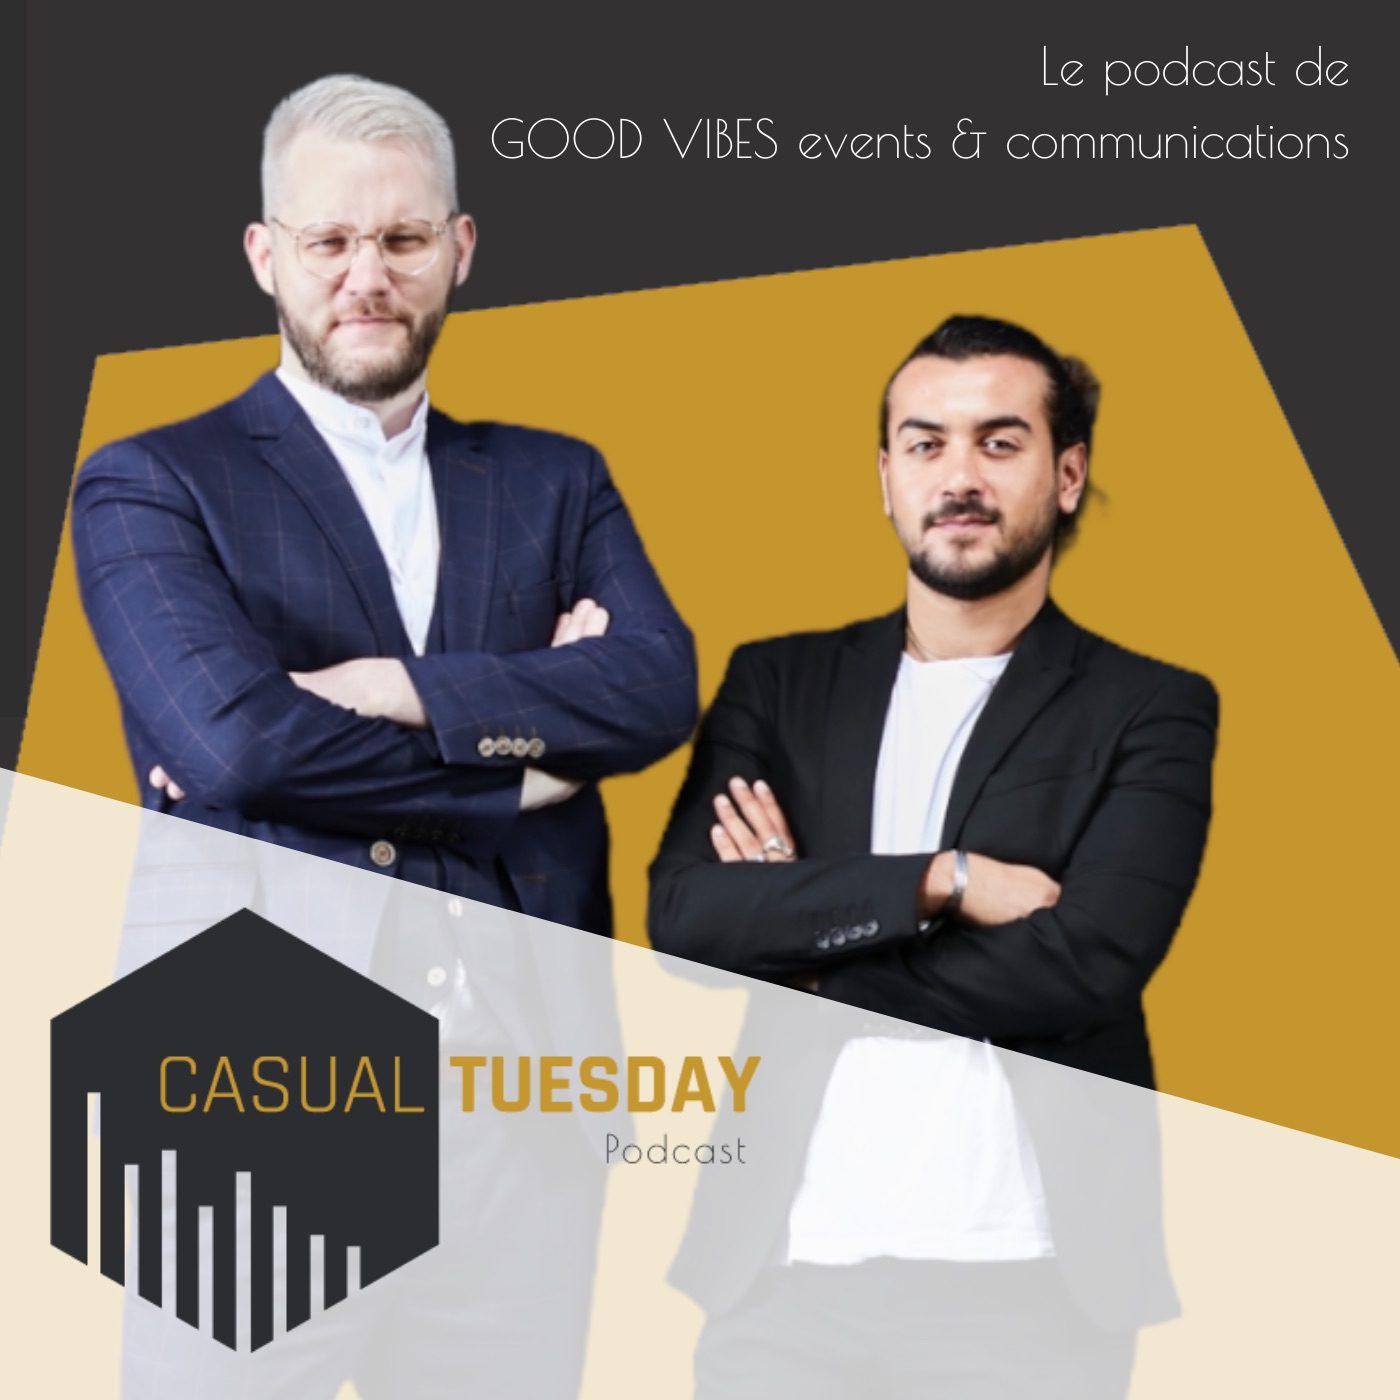 Artwork for podcast Casual Tuesday